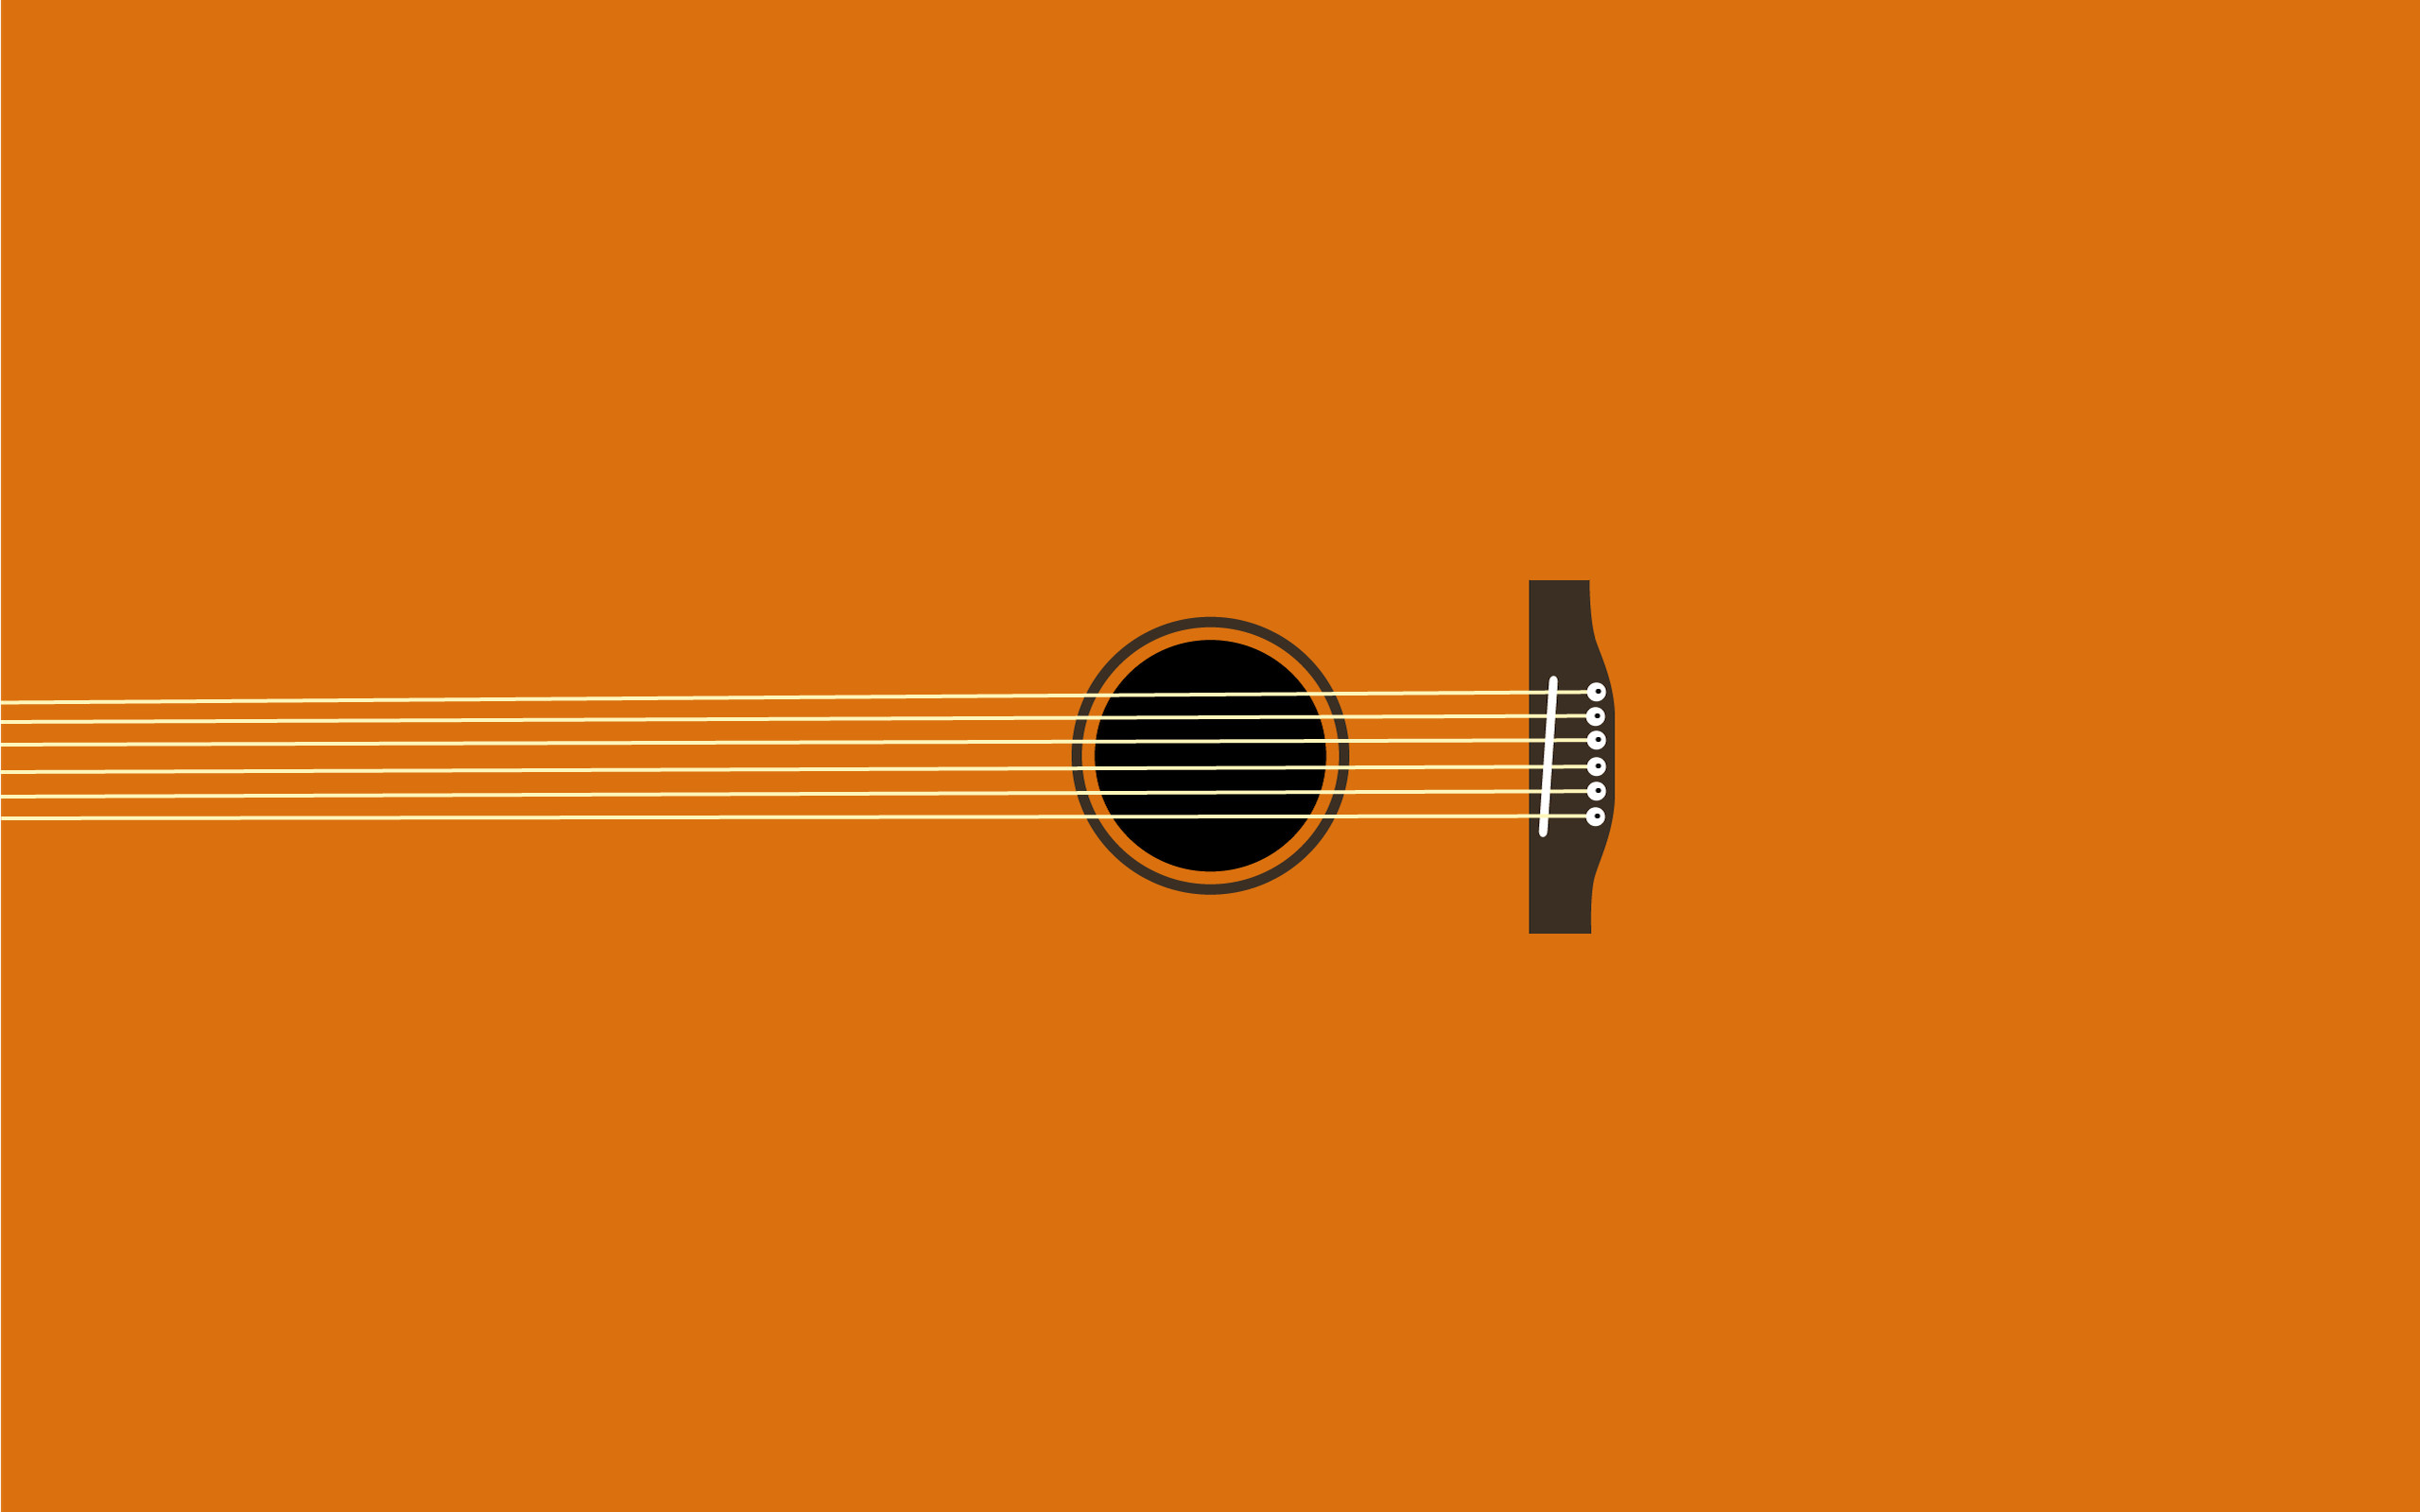 2560x1600 AGX31: Acoustic Guitar Wallpaper  px Download